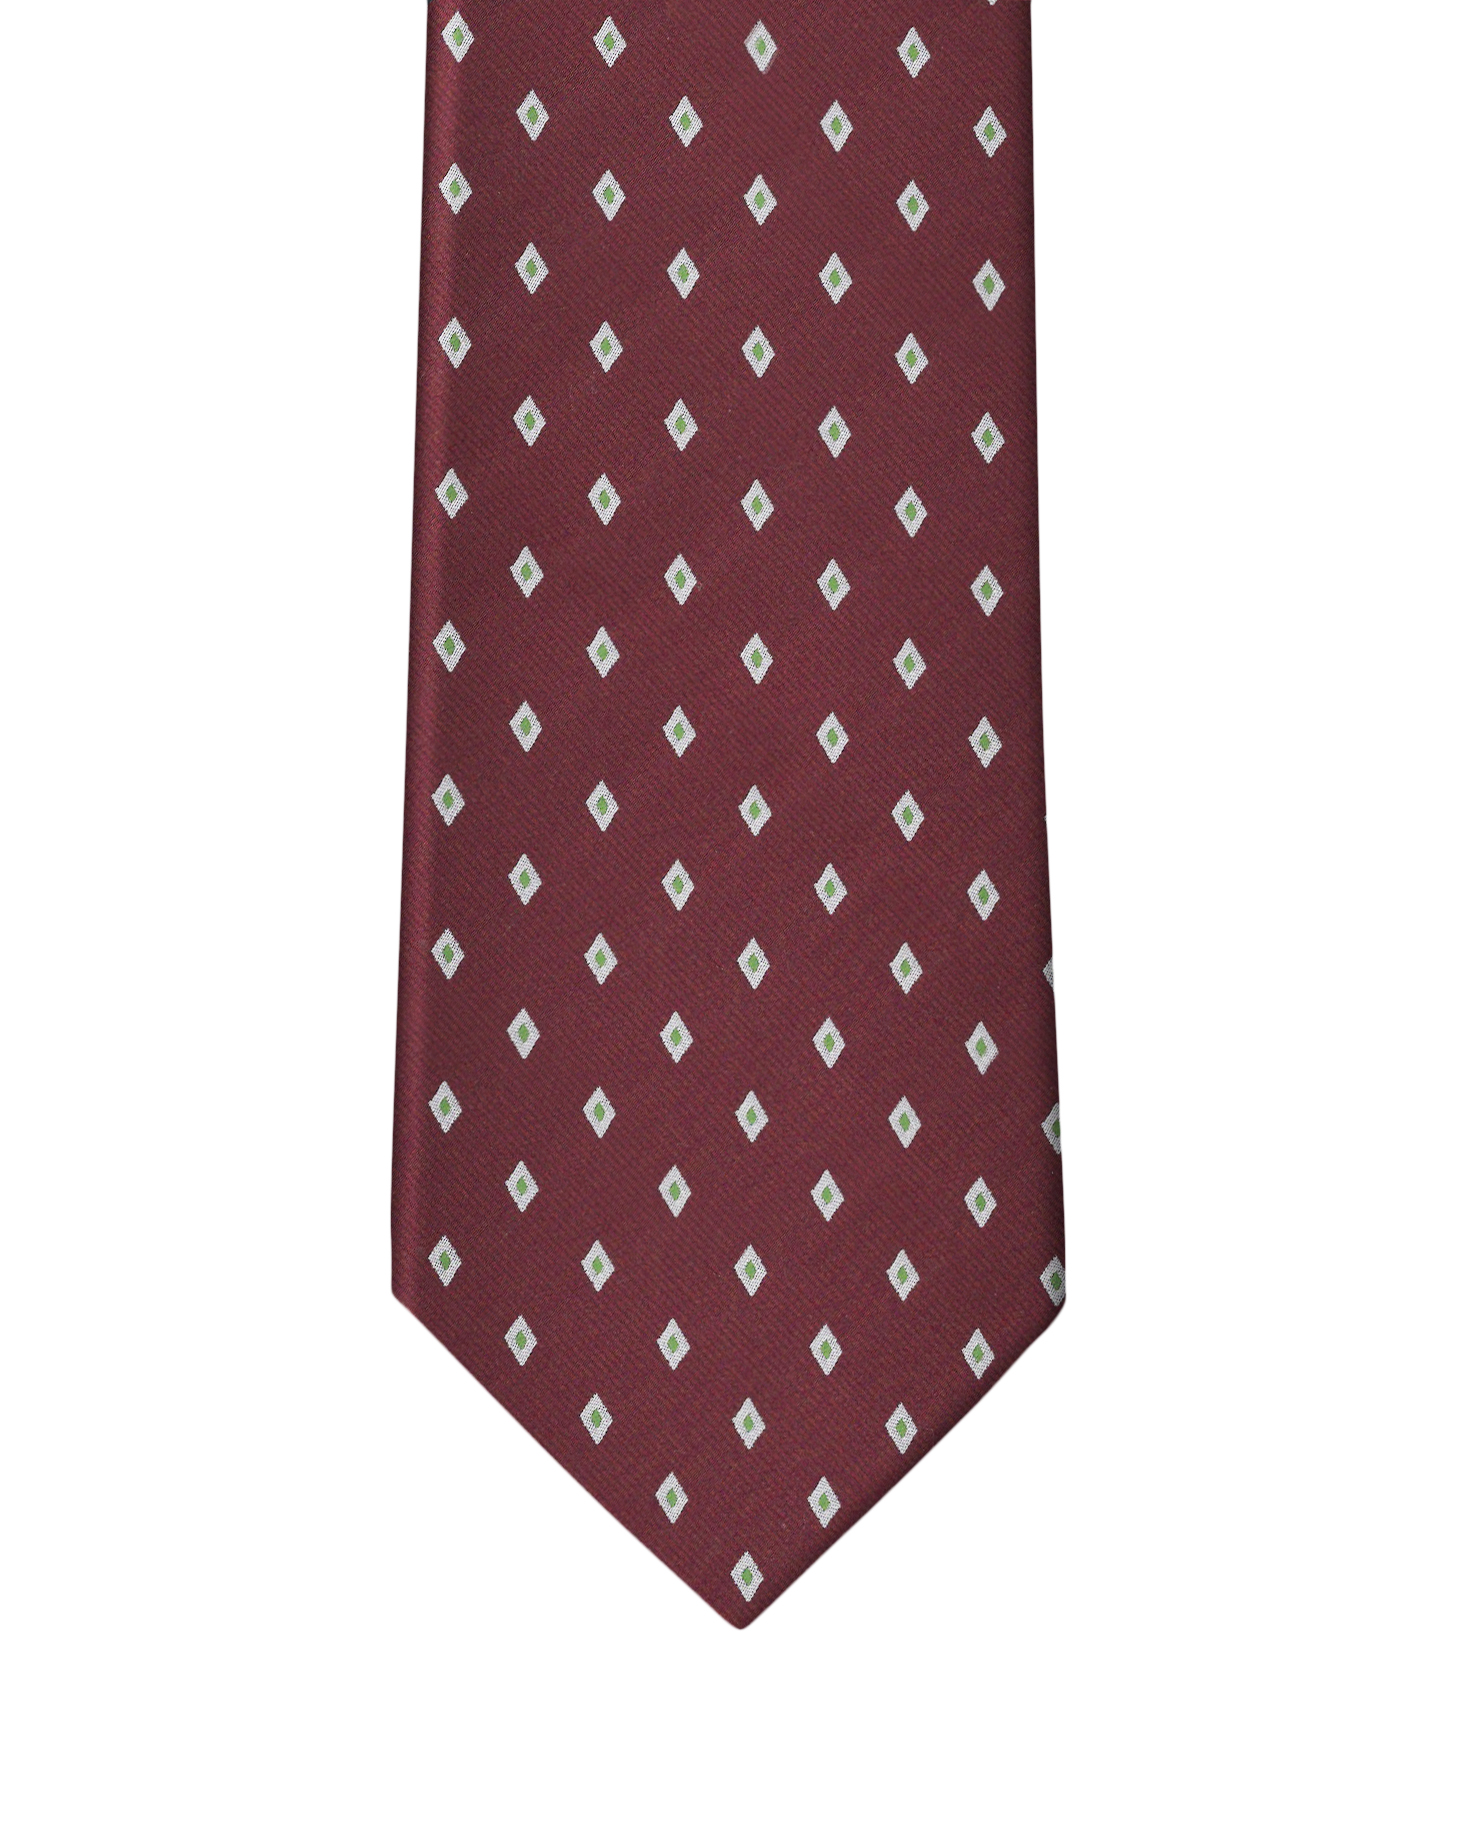 Burgundy Diamond Neat Necktie